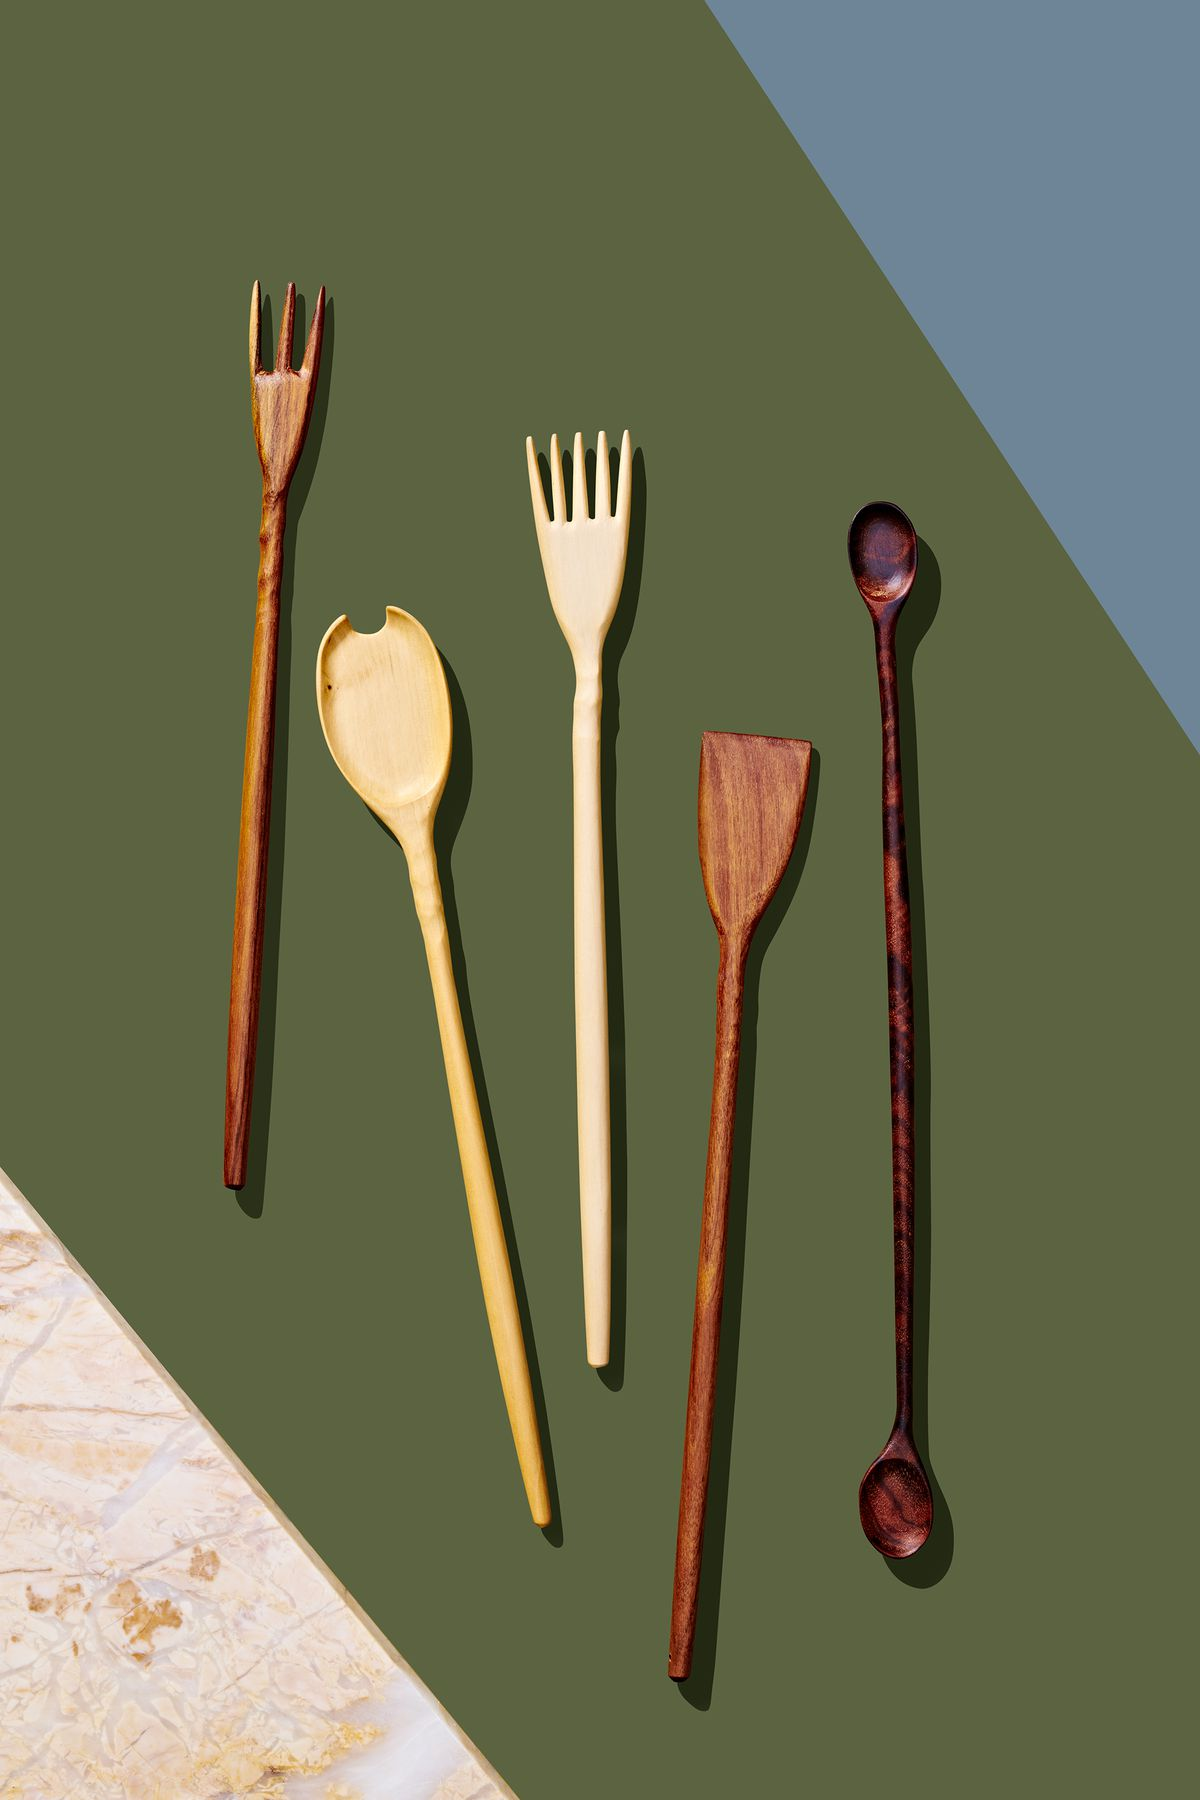 A group of five wooden utensils which are part of the 2019 Holiday Gift Guide for Curbed. The utensils which all have long handles are laying flat on a green surface with a blue accent.